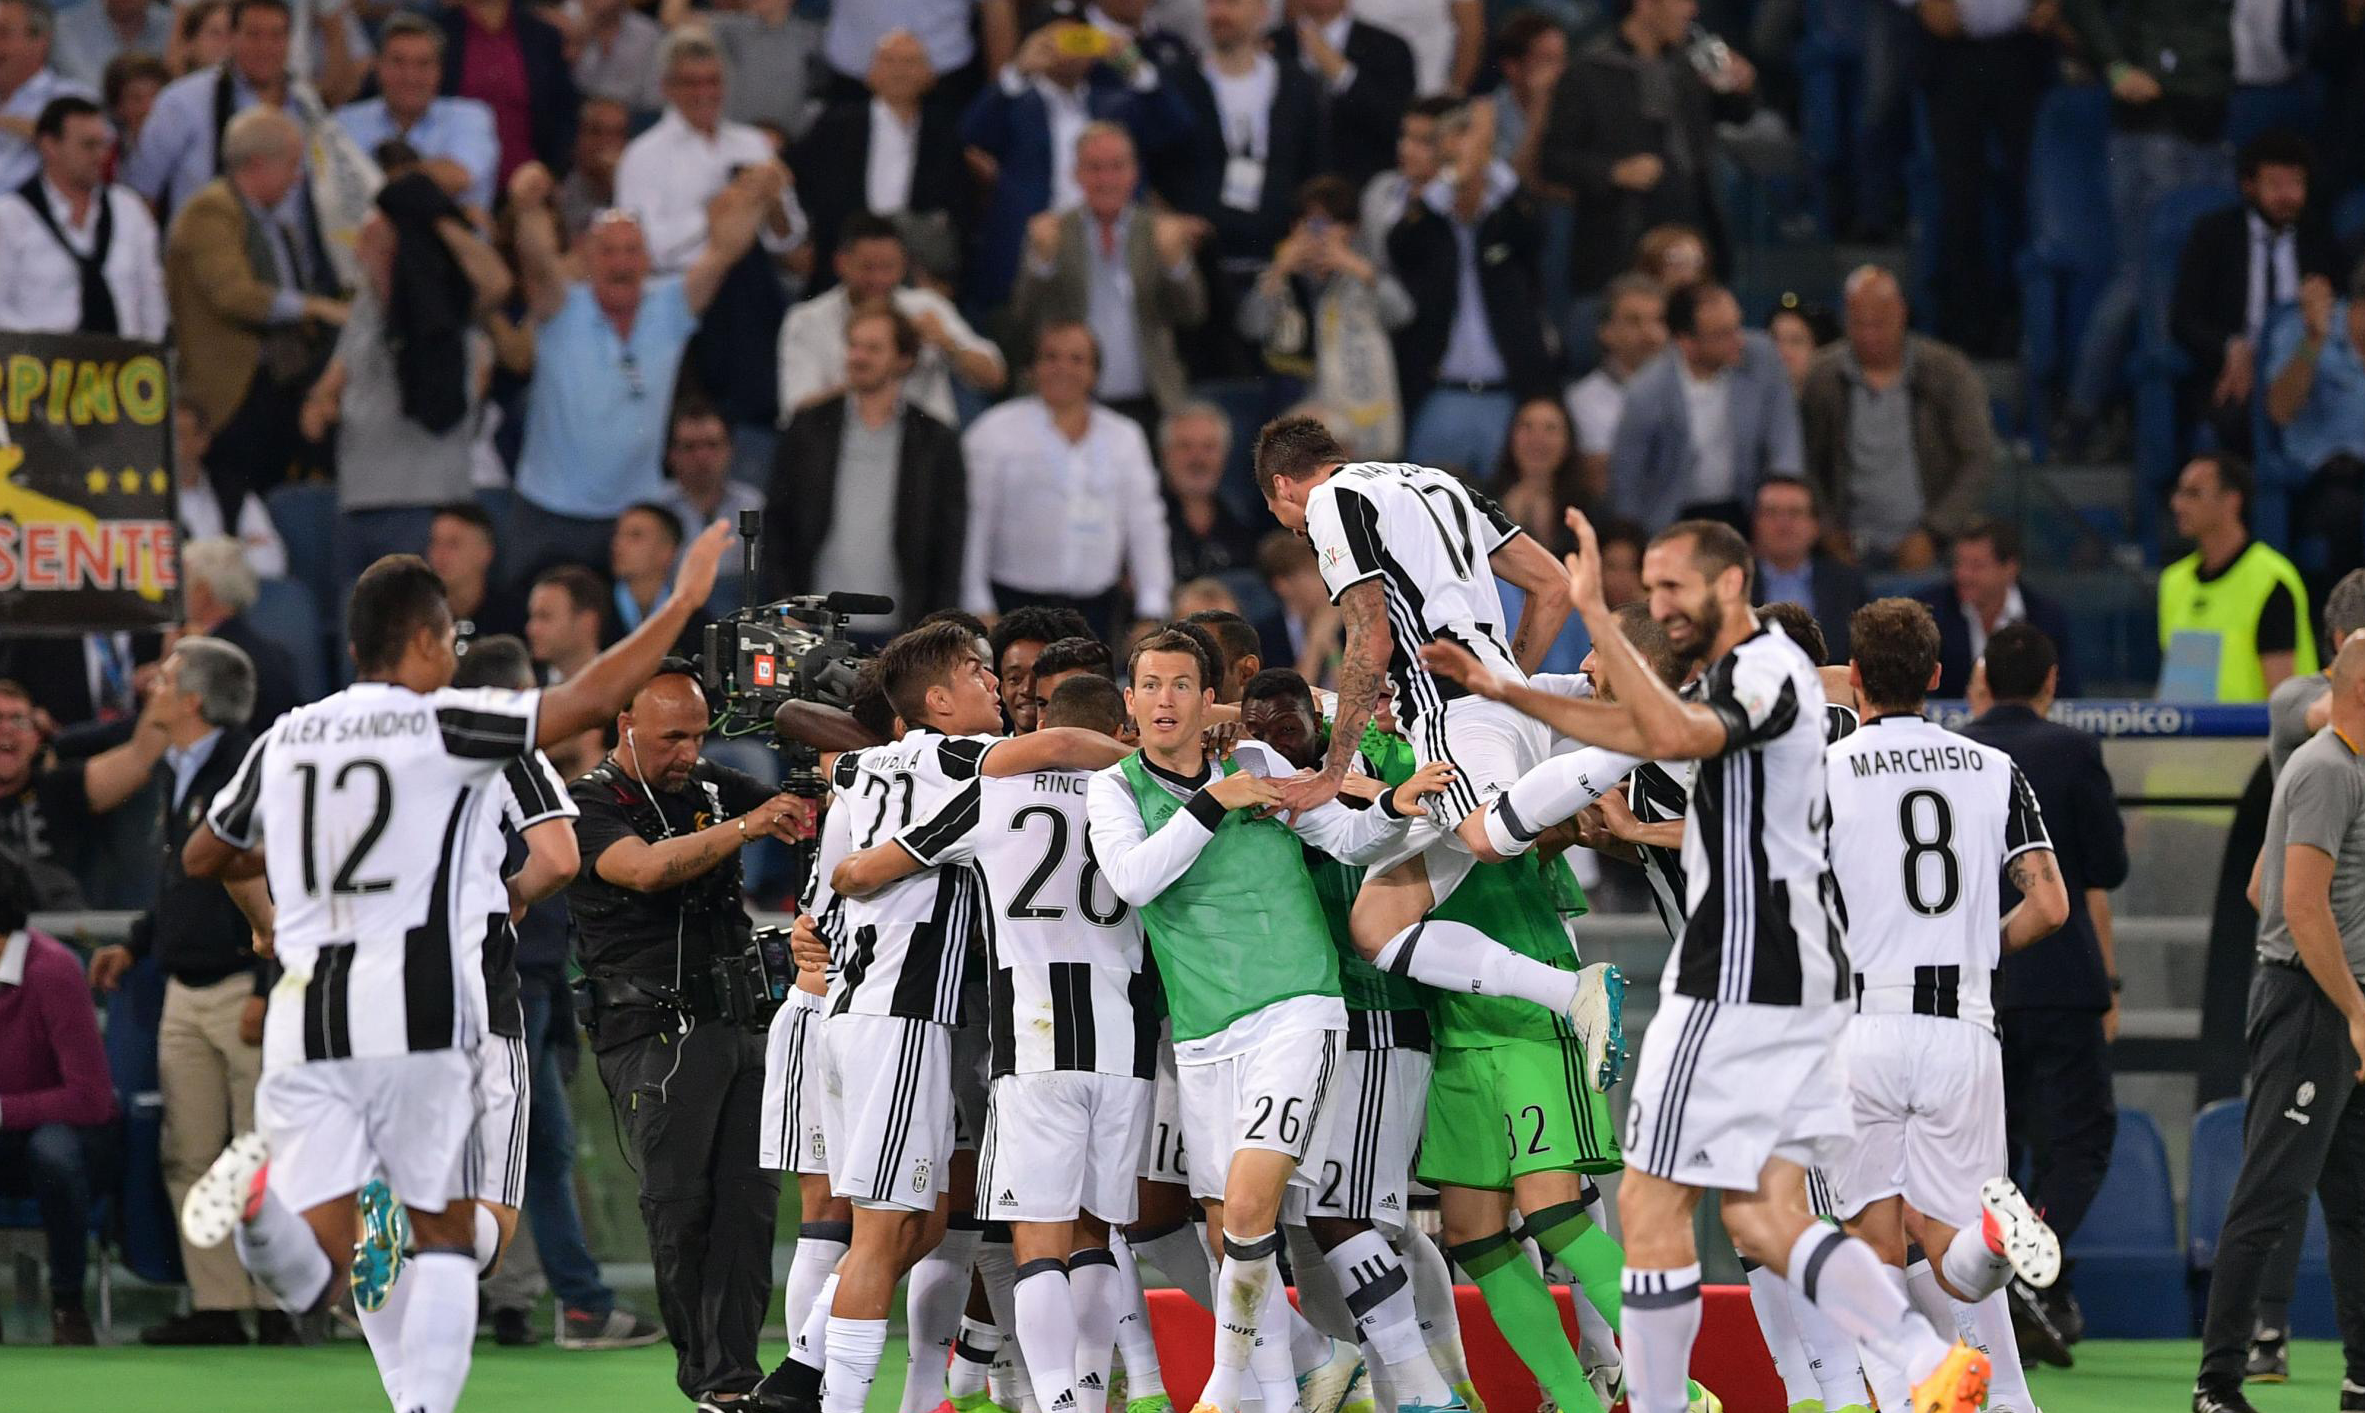 Three Coppa Italia in a row, Bonucci, Alves gives Juventus first trophy of the season.